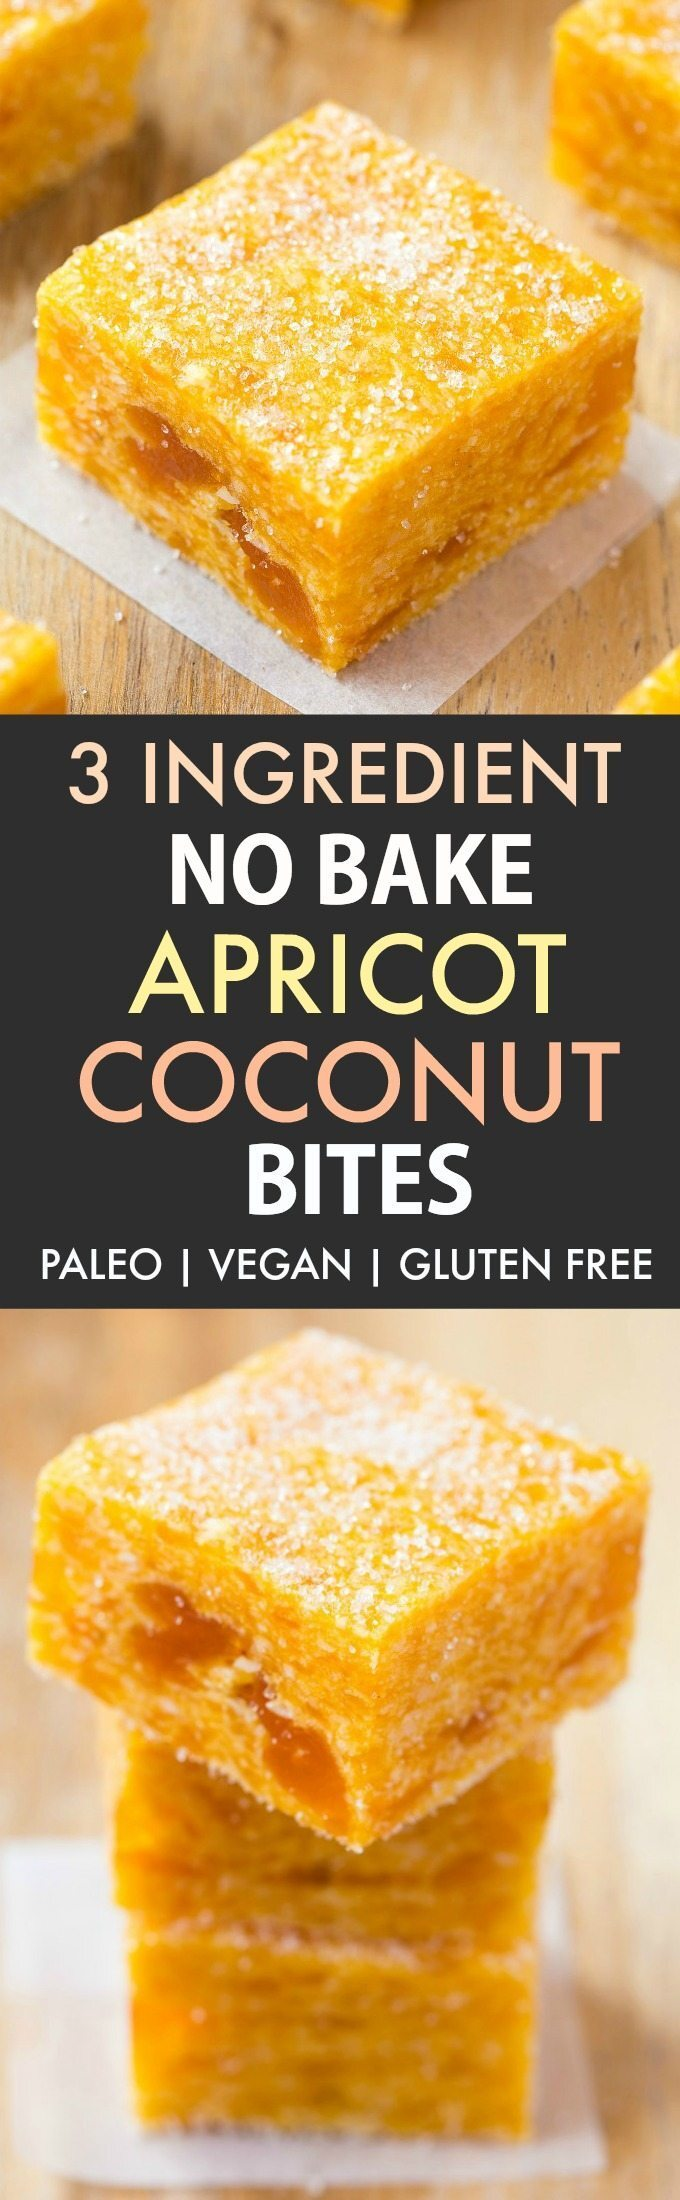 3 Ingredient No Bake Apricot Coconut Bites (Paleo, Vegan, Gluten Free)